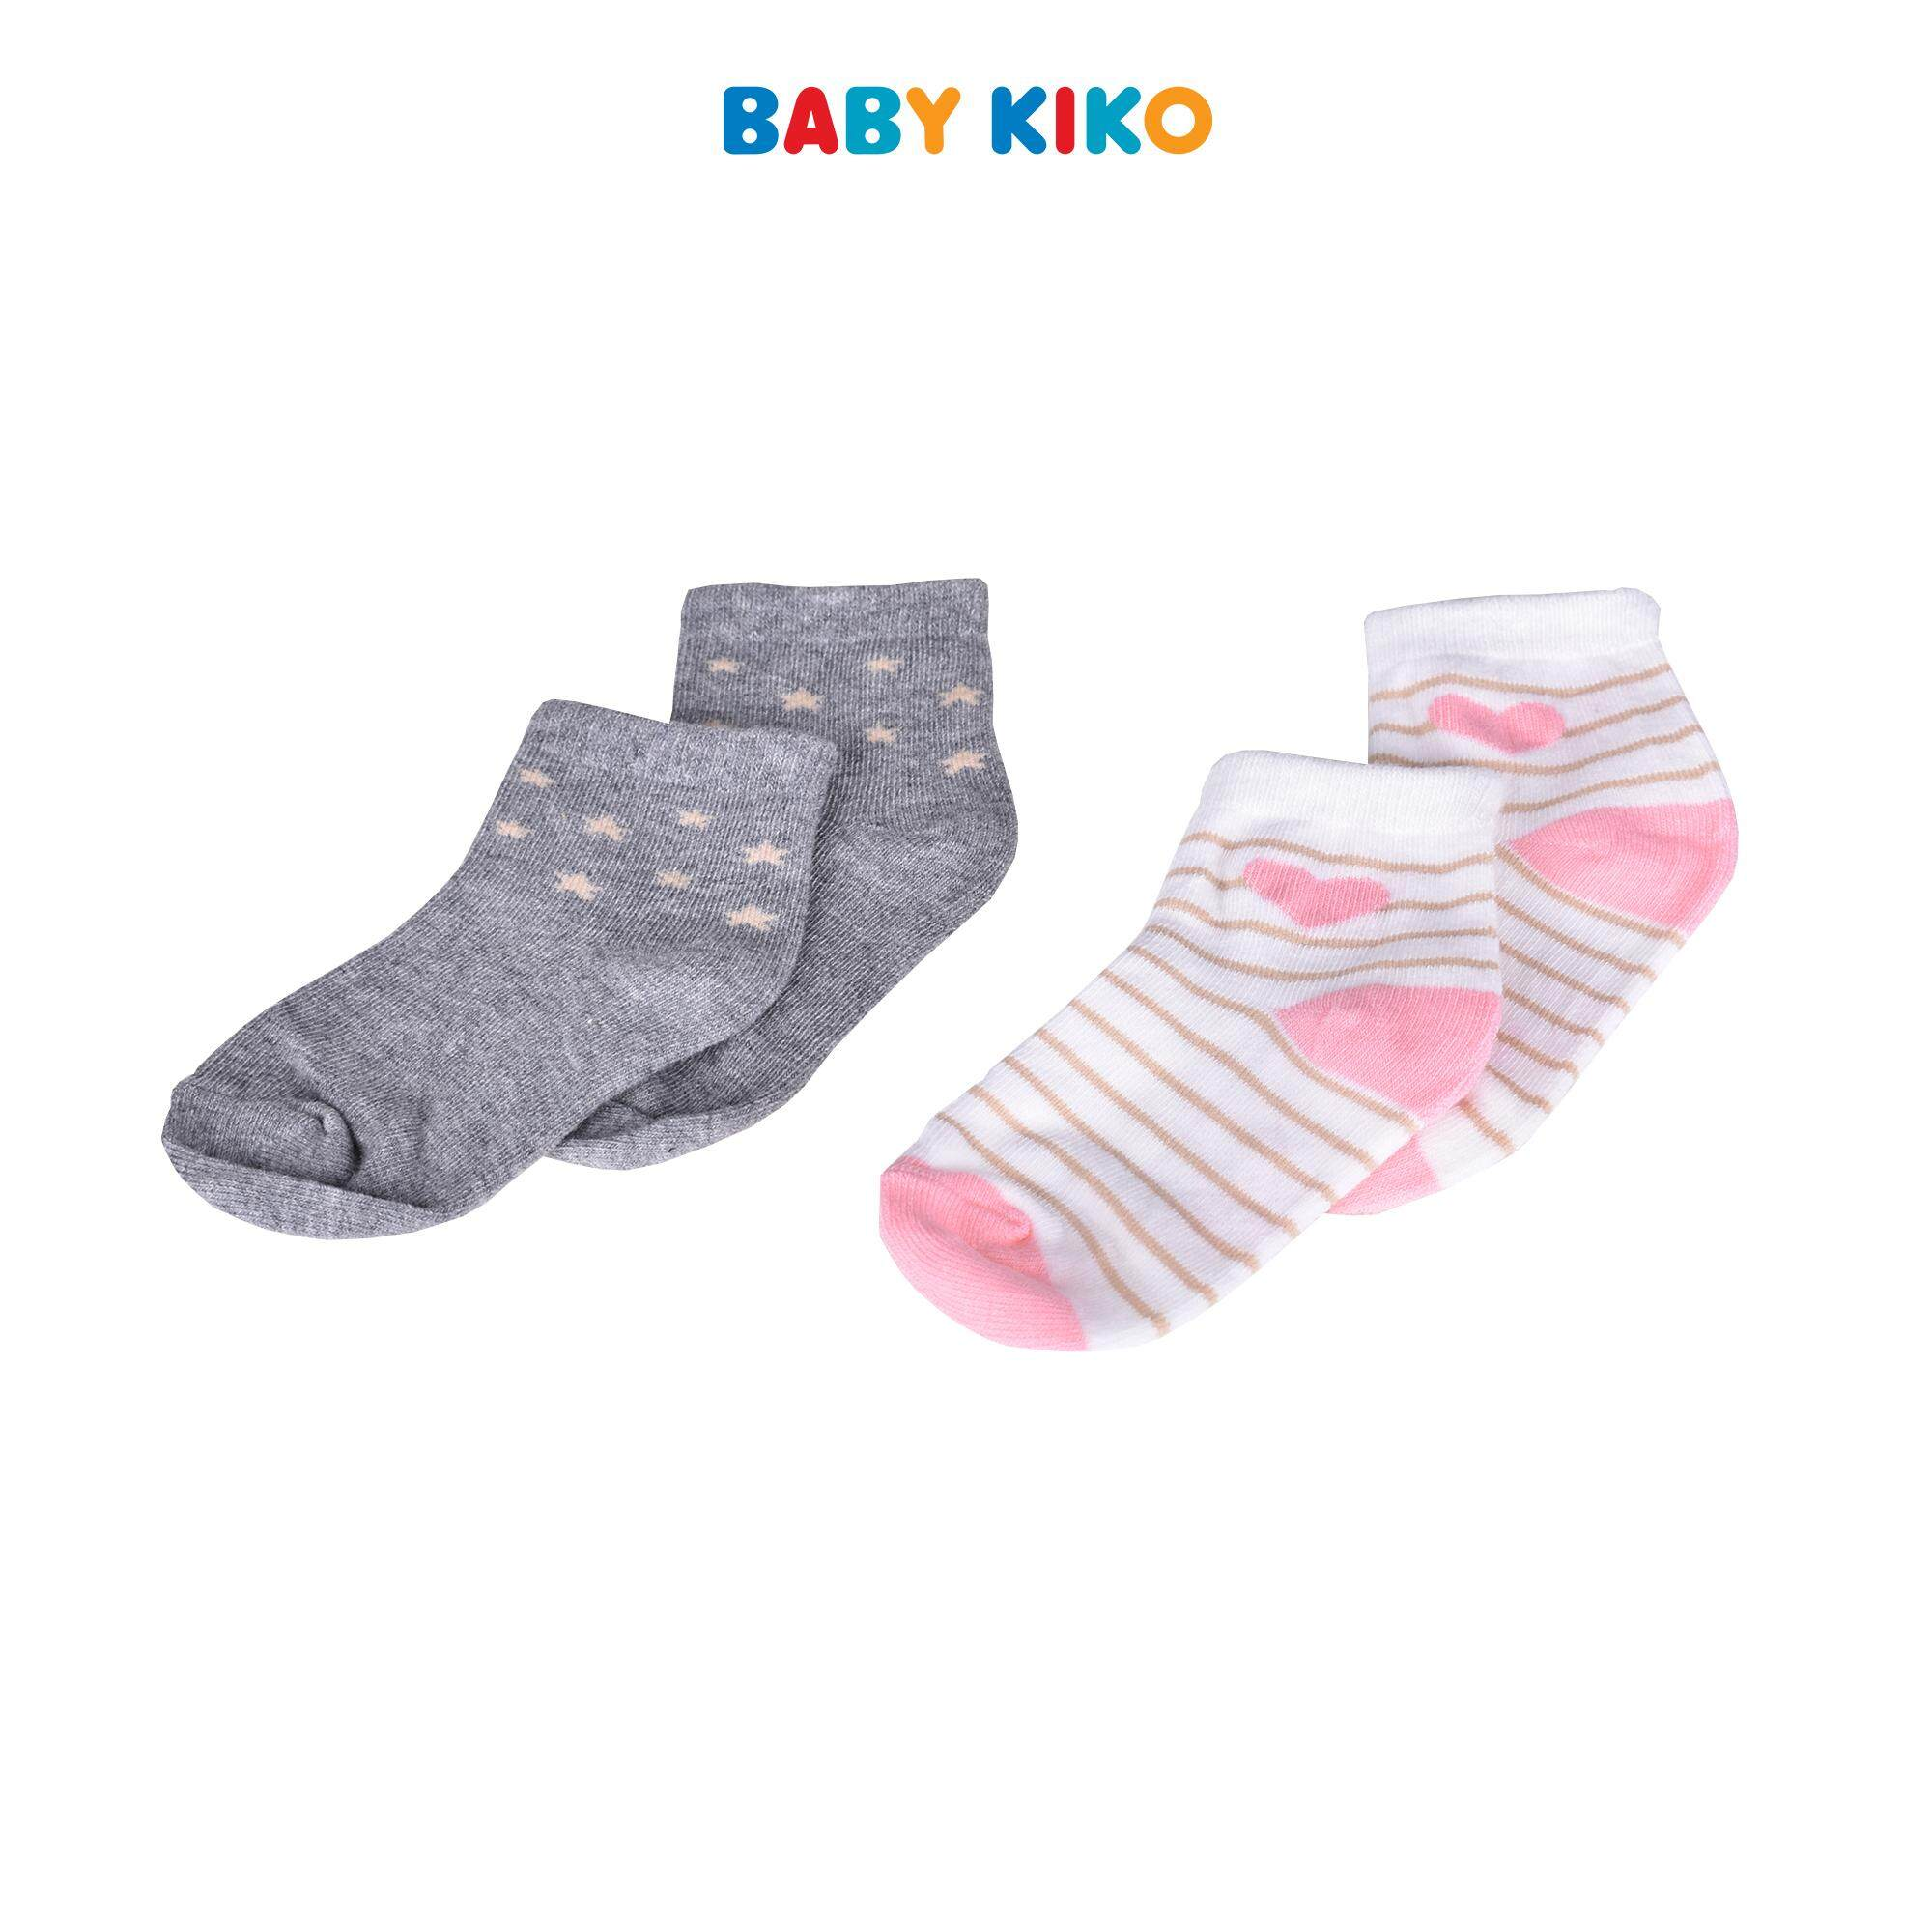 b9542d425 Baby KIKO Infant Girl Ankle Height Socks (2 Pairs) - Grey Pink 320138-